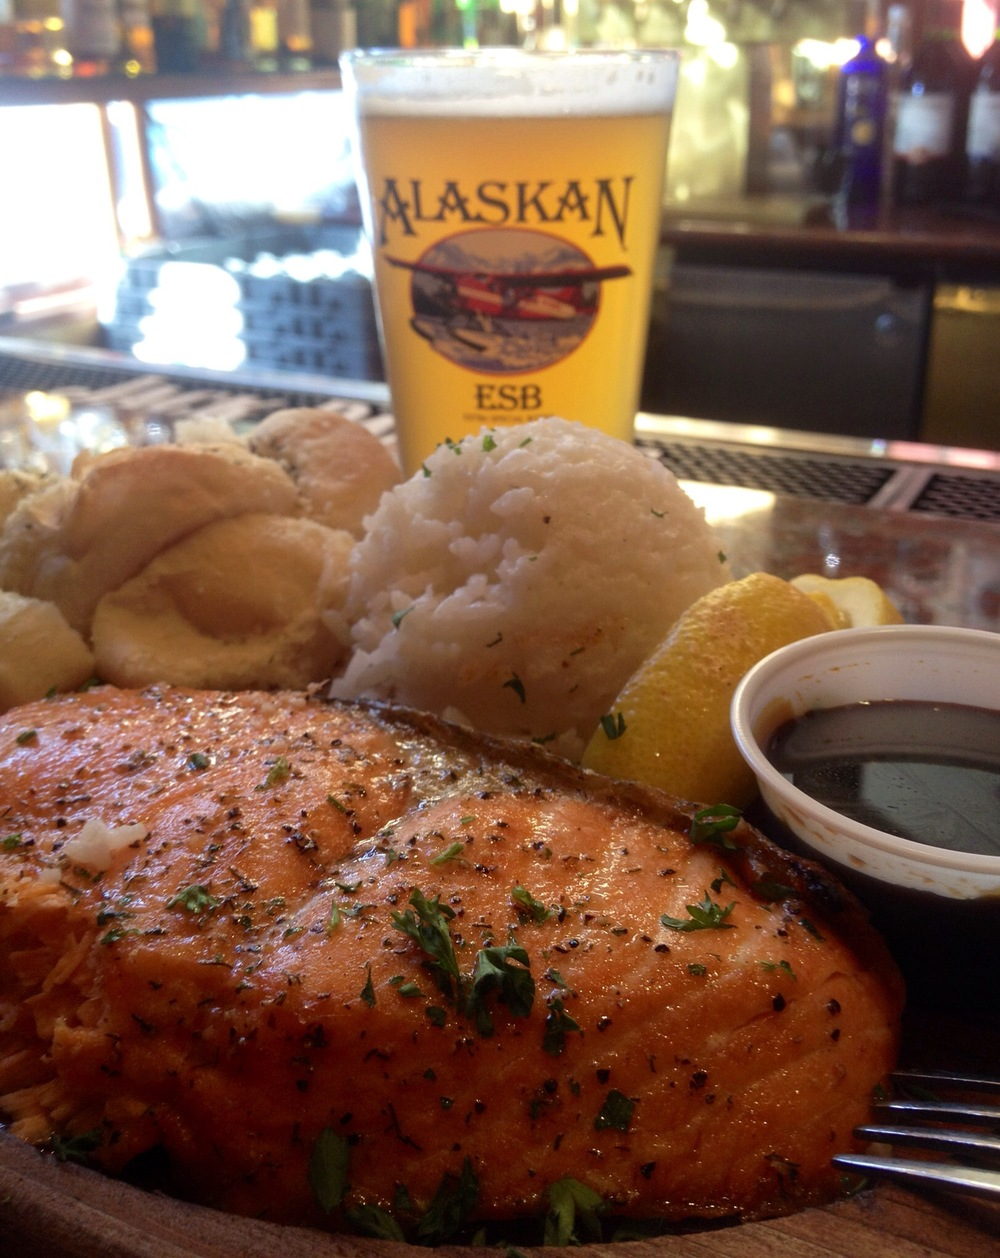 The Cedar Planked Salmon and an Alaskan White from Twisted Fish in Juneau.